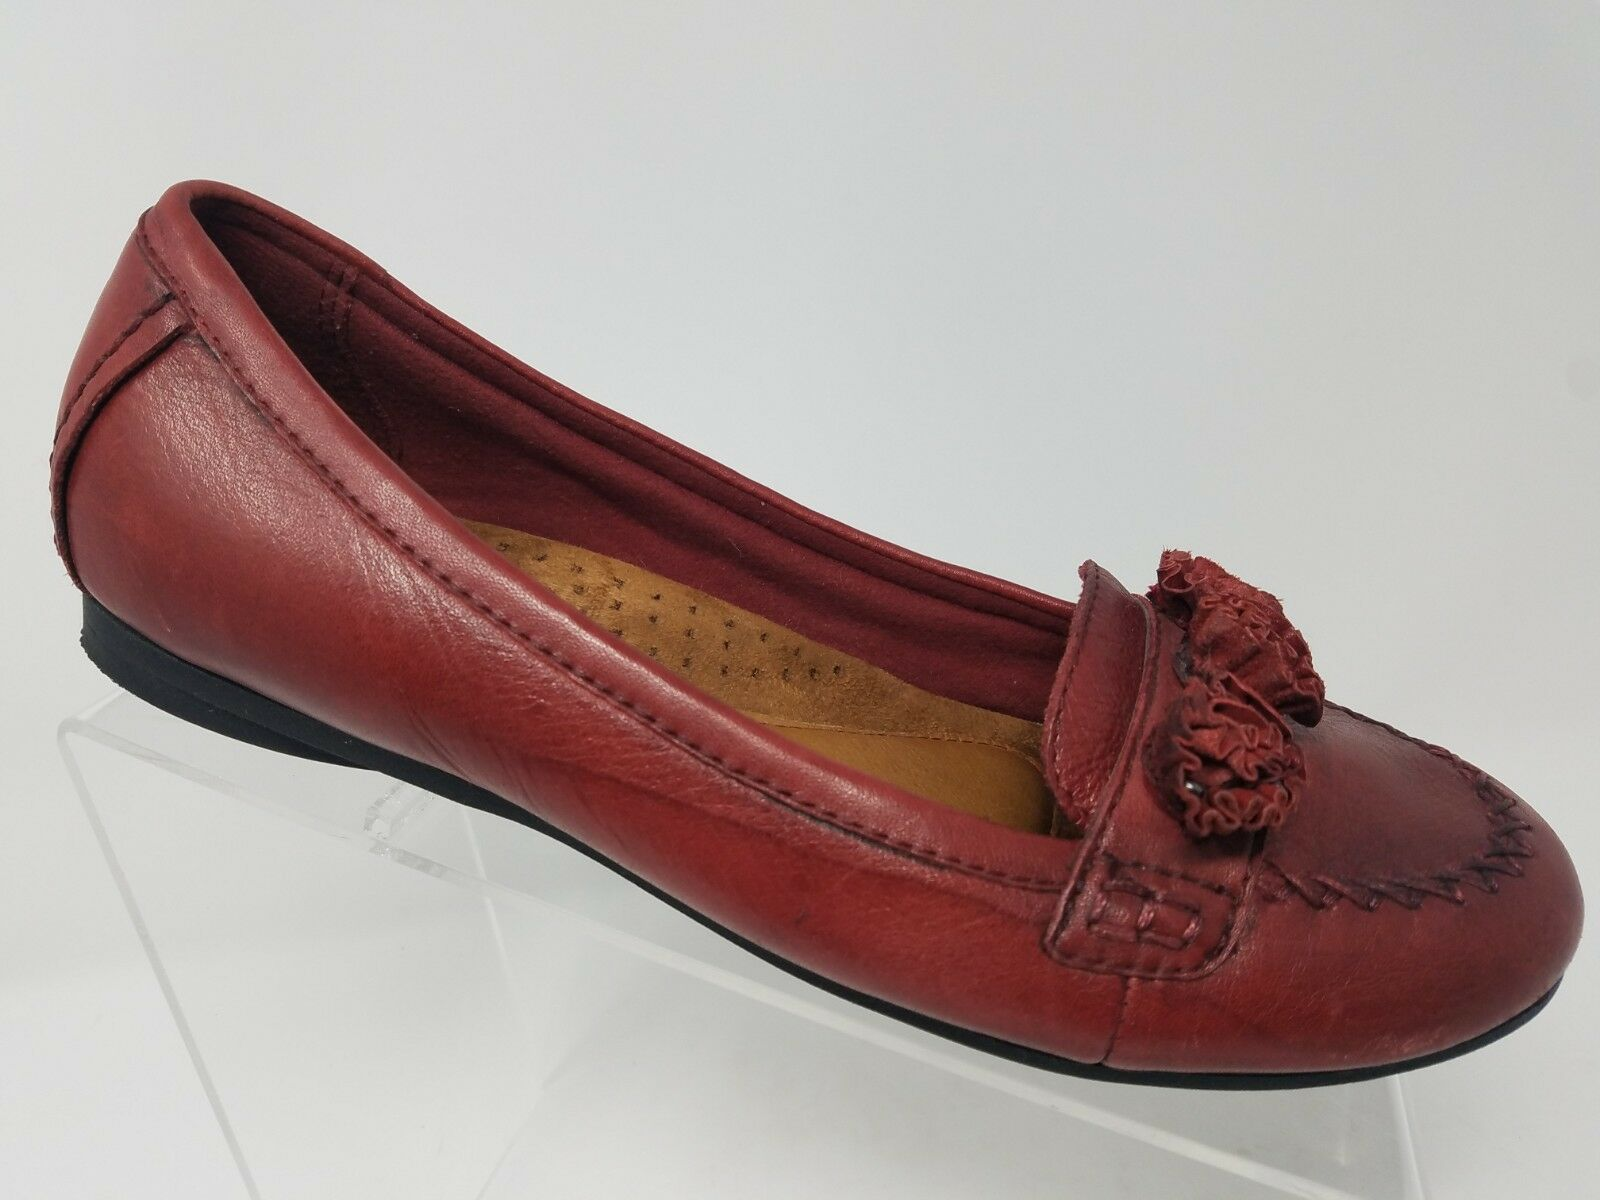 Cobb Hill Floral Womens Flat Size 7.5 Wide Red Leather Comfort shoes